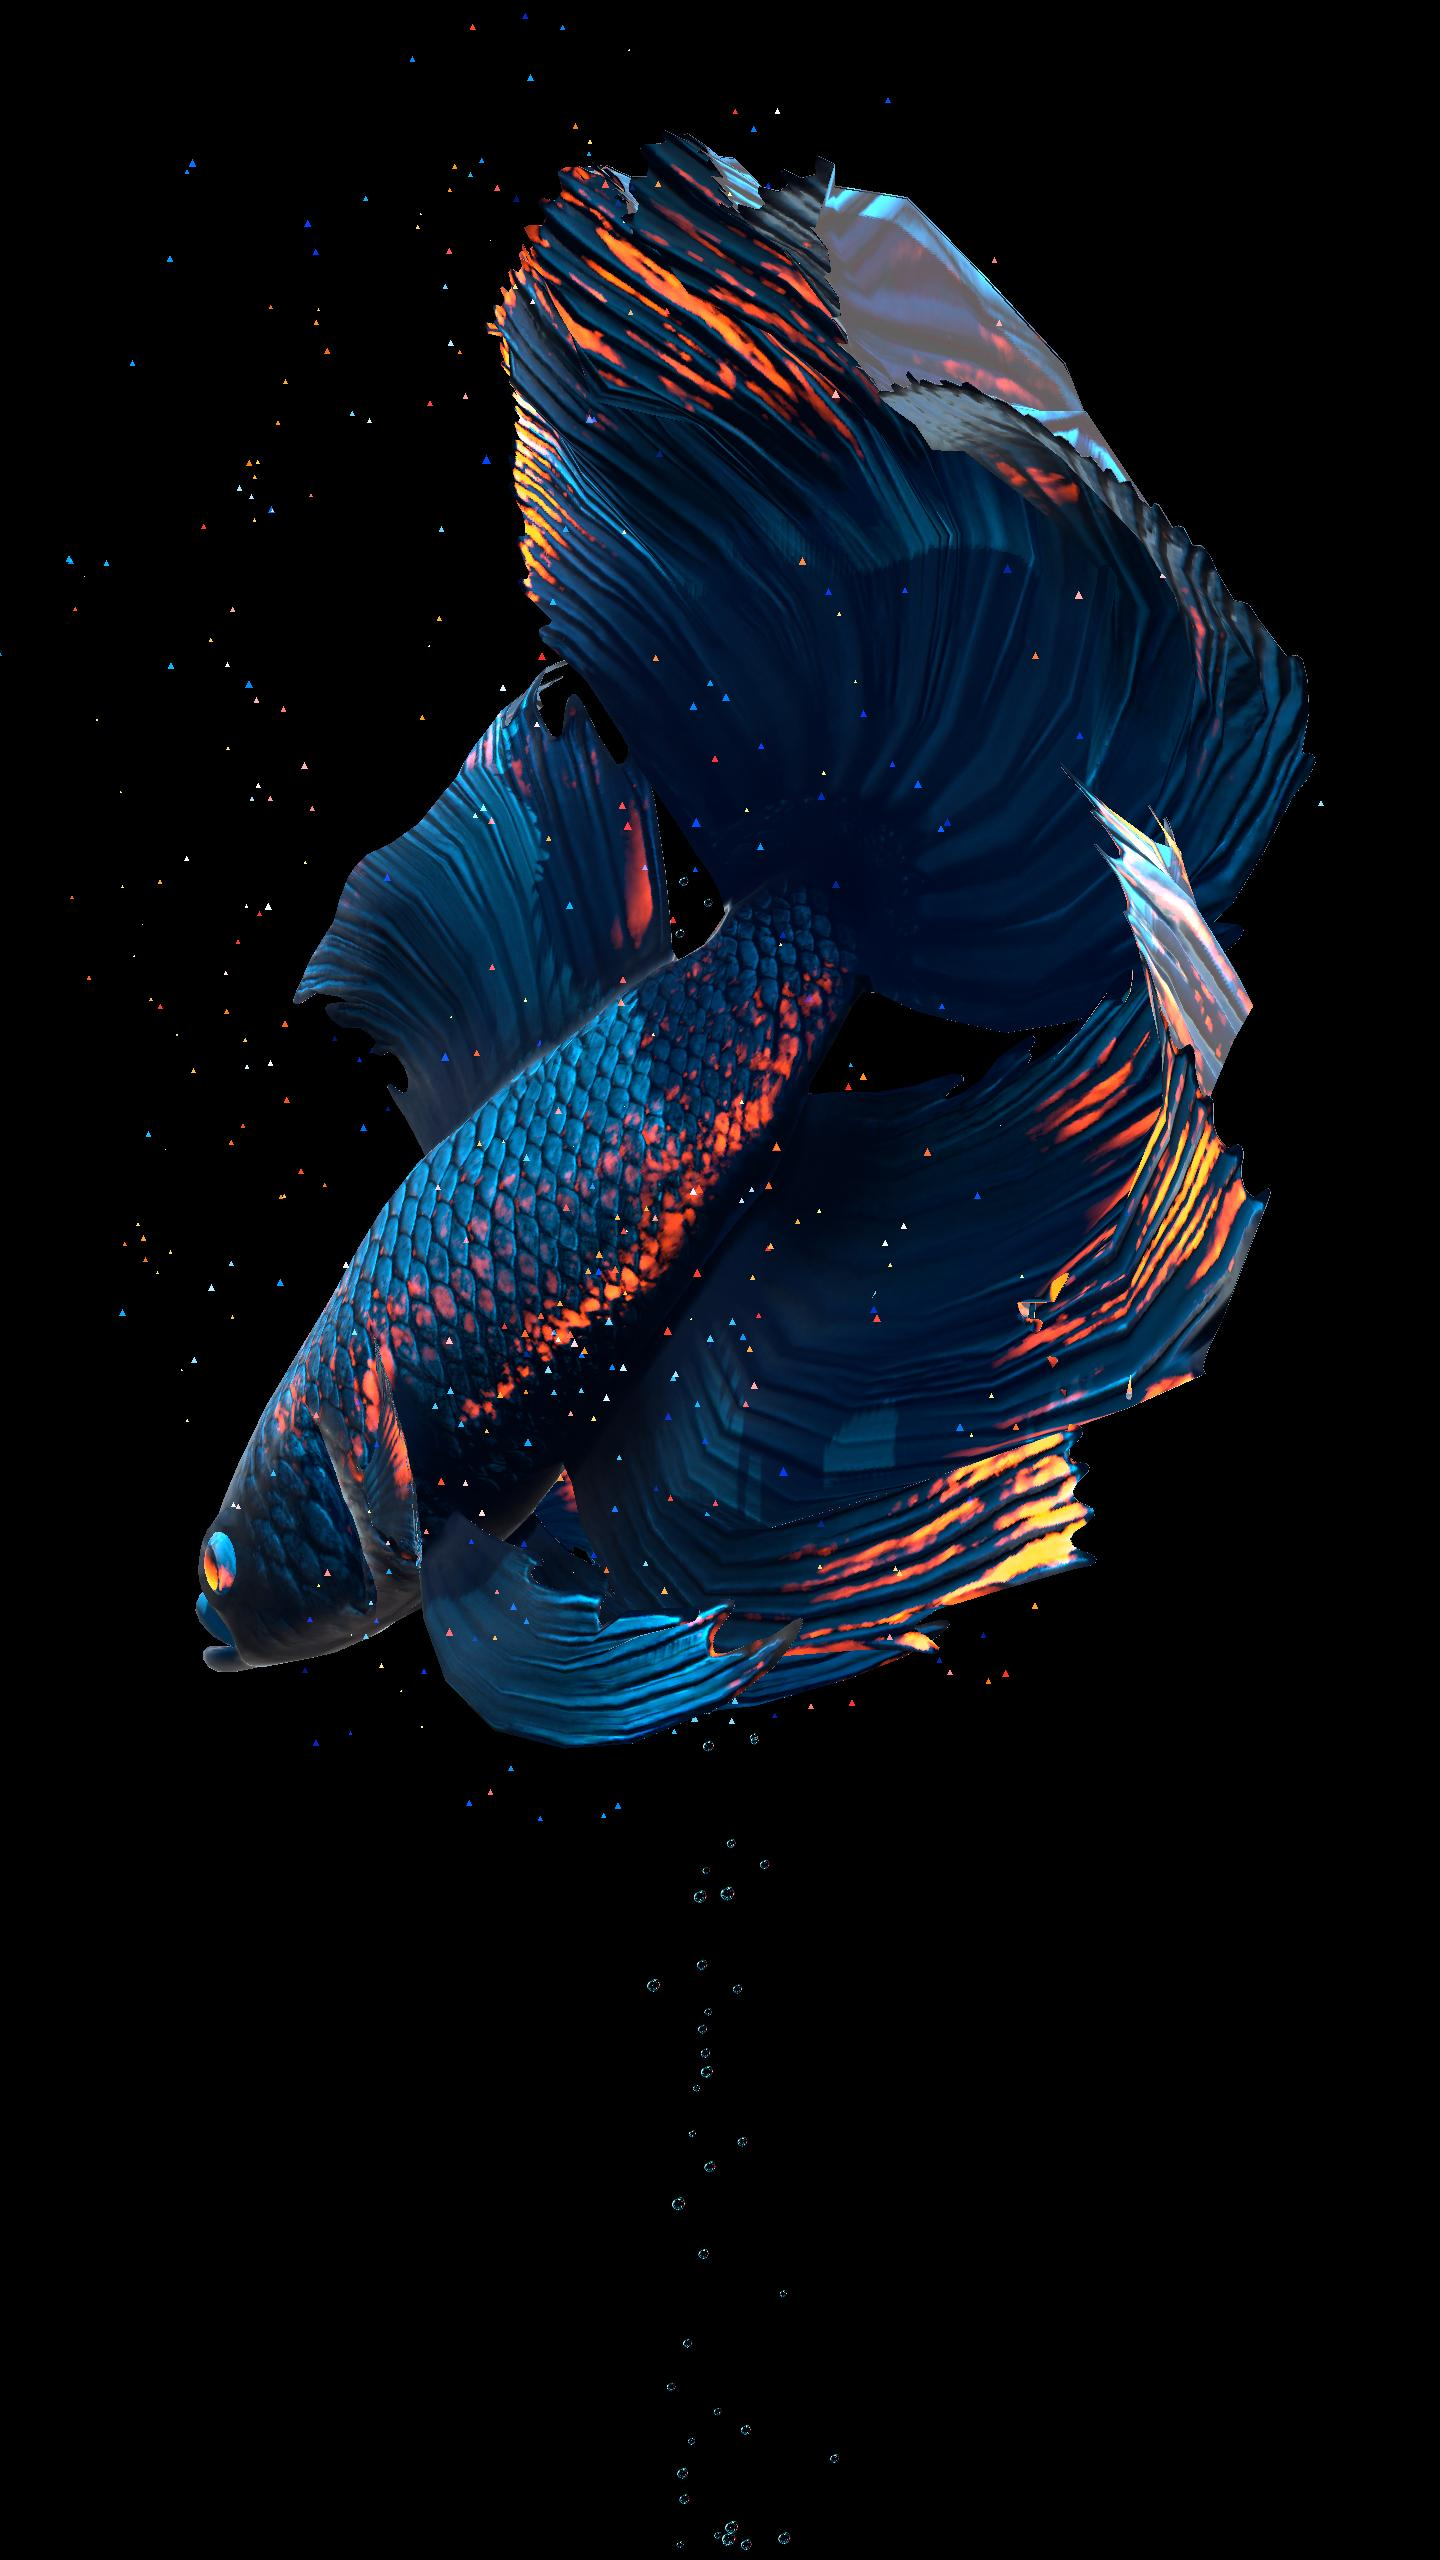 Betta Fish Live Wallpaper Free For Android Apk Download